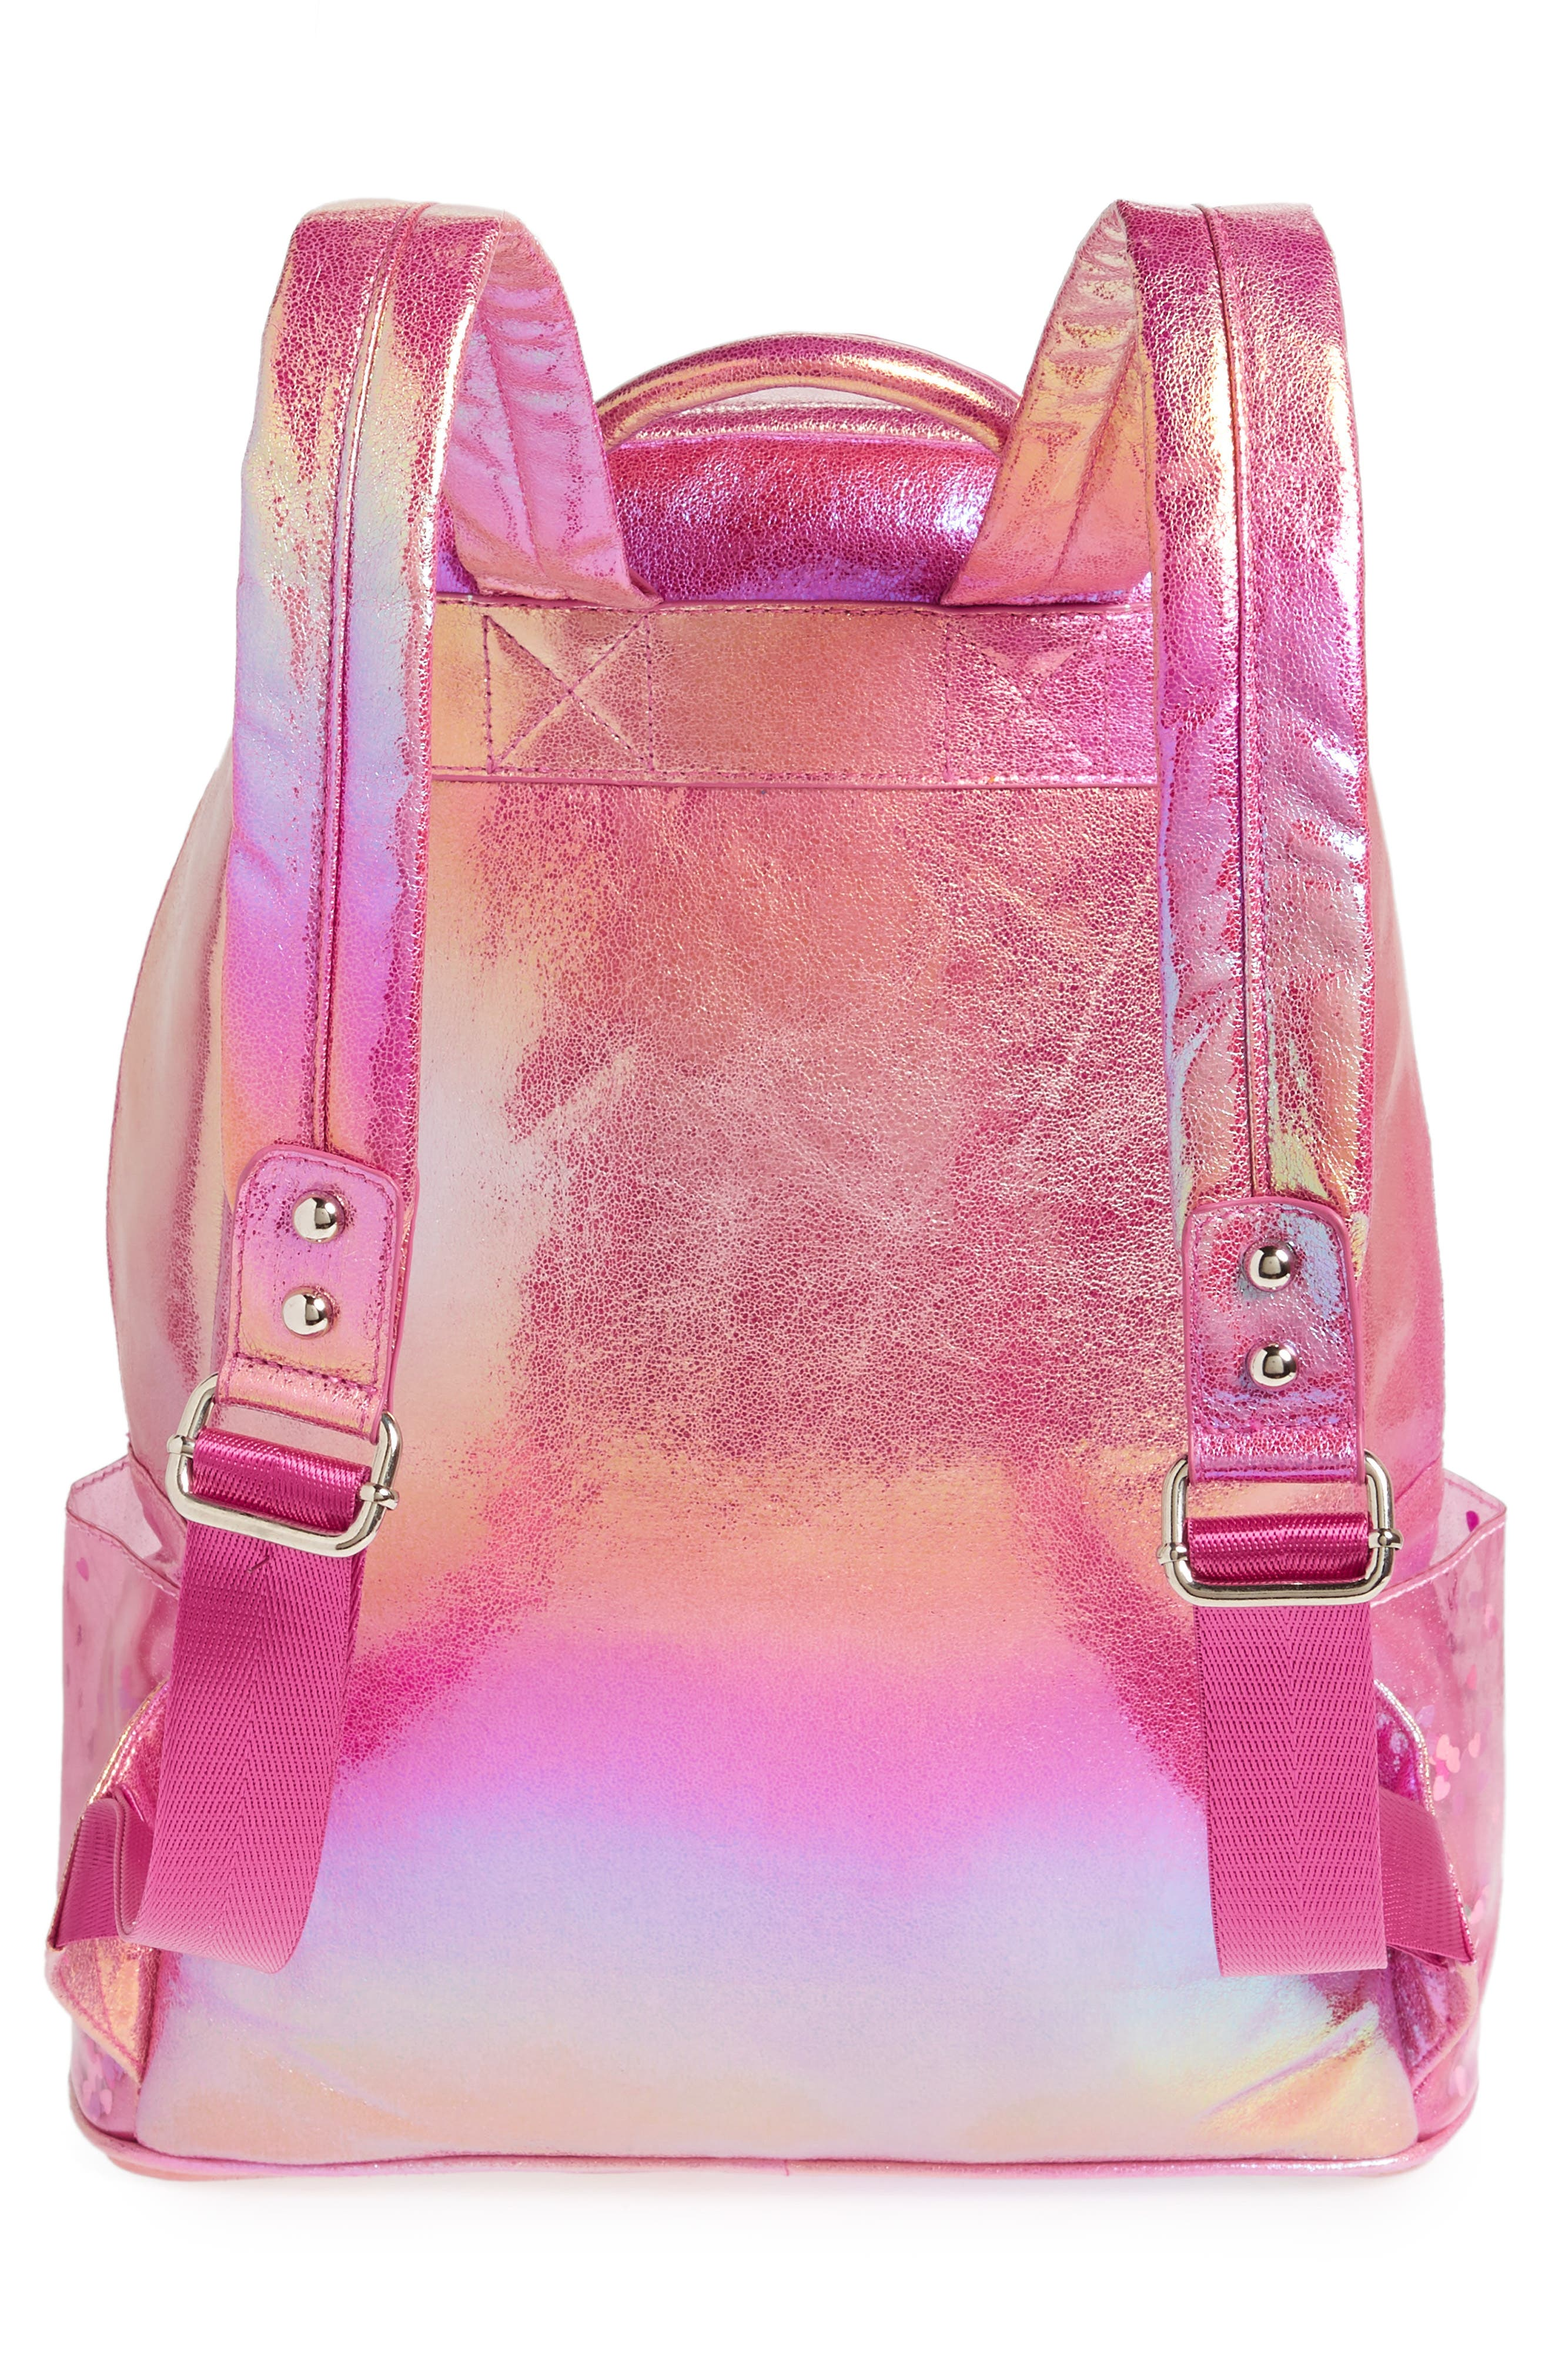 Heart Confetti Holographic Backpack,                             Alternate thumbnail 2, color,                             650